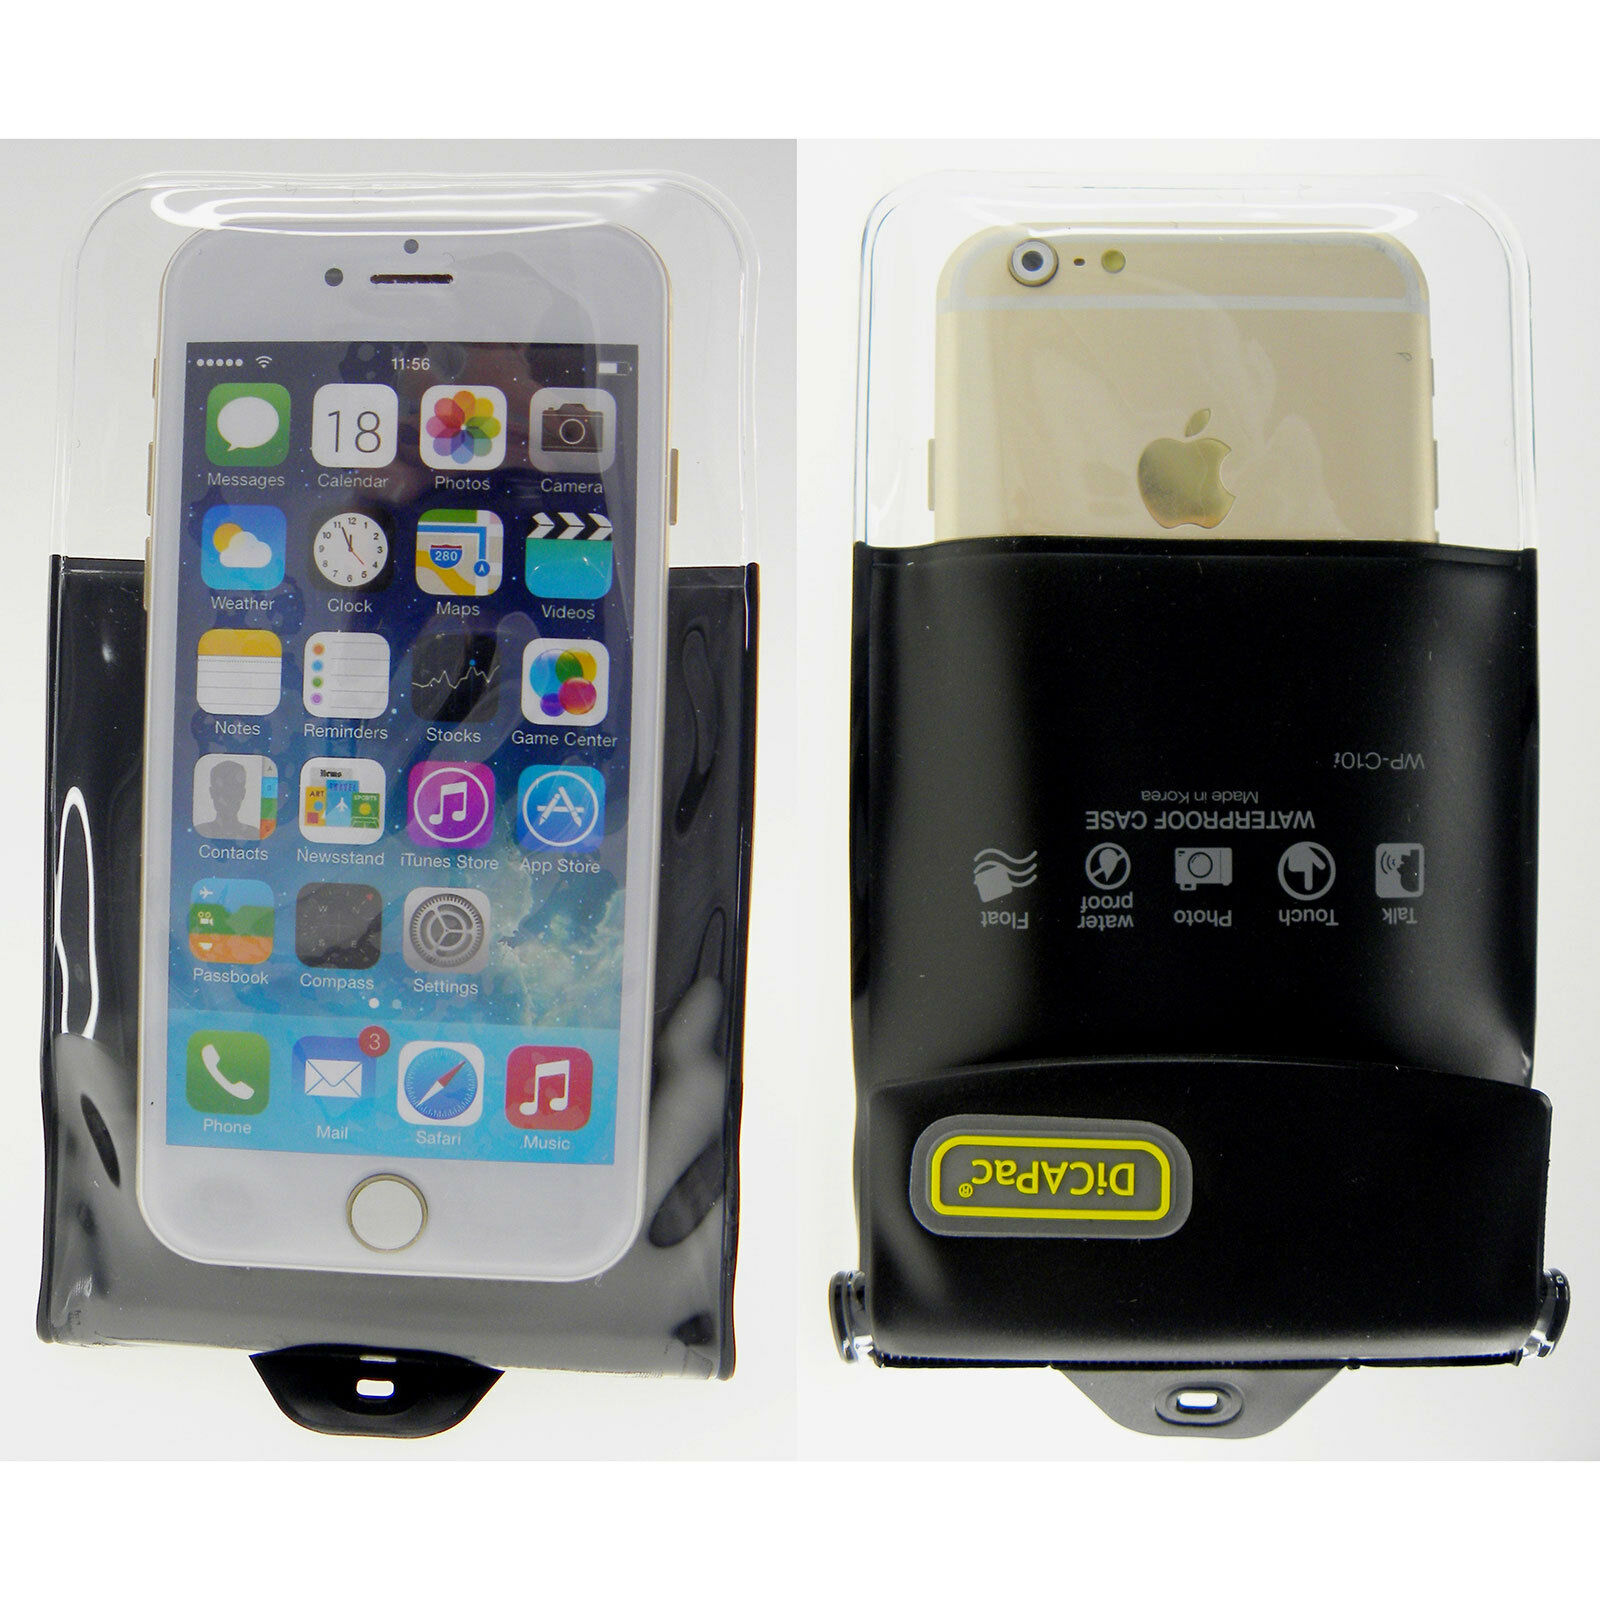 Dicapac Waterproof Case Wp C10i For Iphone 4 5 5s 6 6s Galaxy S4 S5 S10 Slr Dslr Cameras 1 Of 12free Shipping